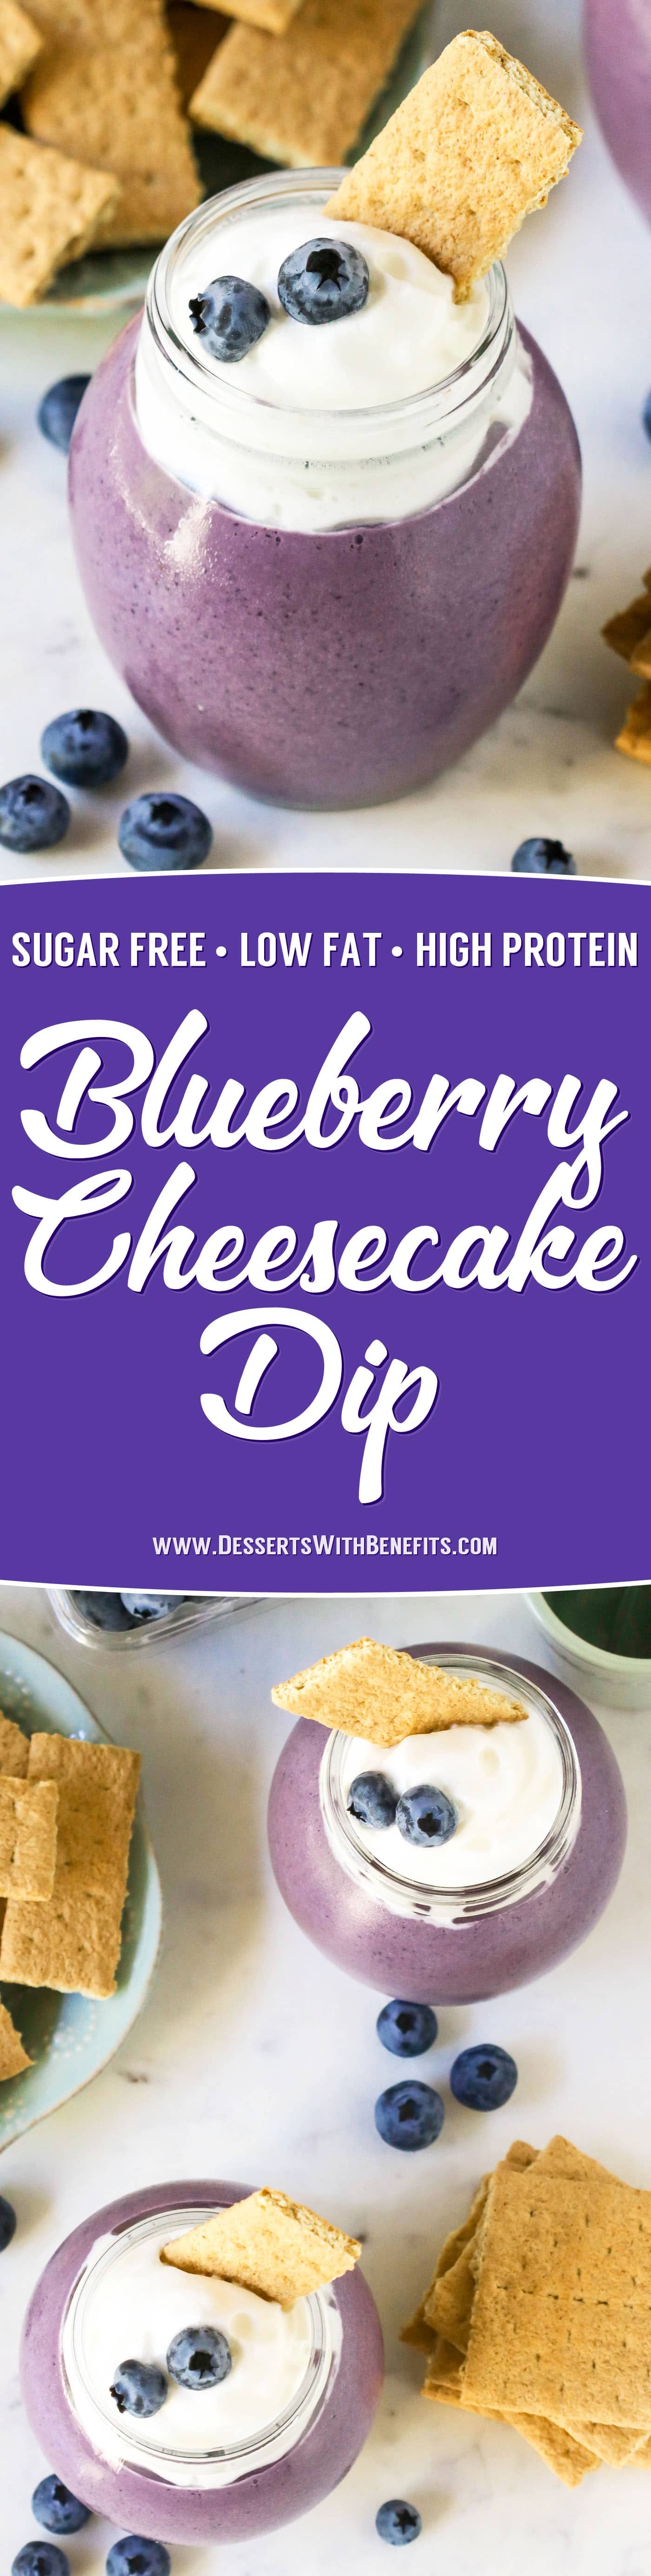 Don't have time to bake off an entire cheesecake? Make this 5-minute Blueberry Cheesecake Dip! It's thick, creamy, and sweet, just like cheesecake batter, but made with the sugar, eggs, butter, and cream cheese! You'd never know it's sugar free, low fat, high protein, and gluten free too!